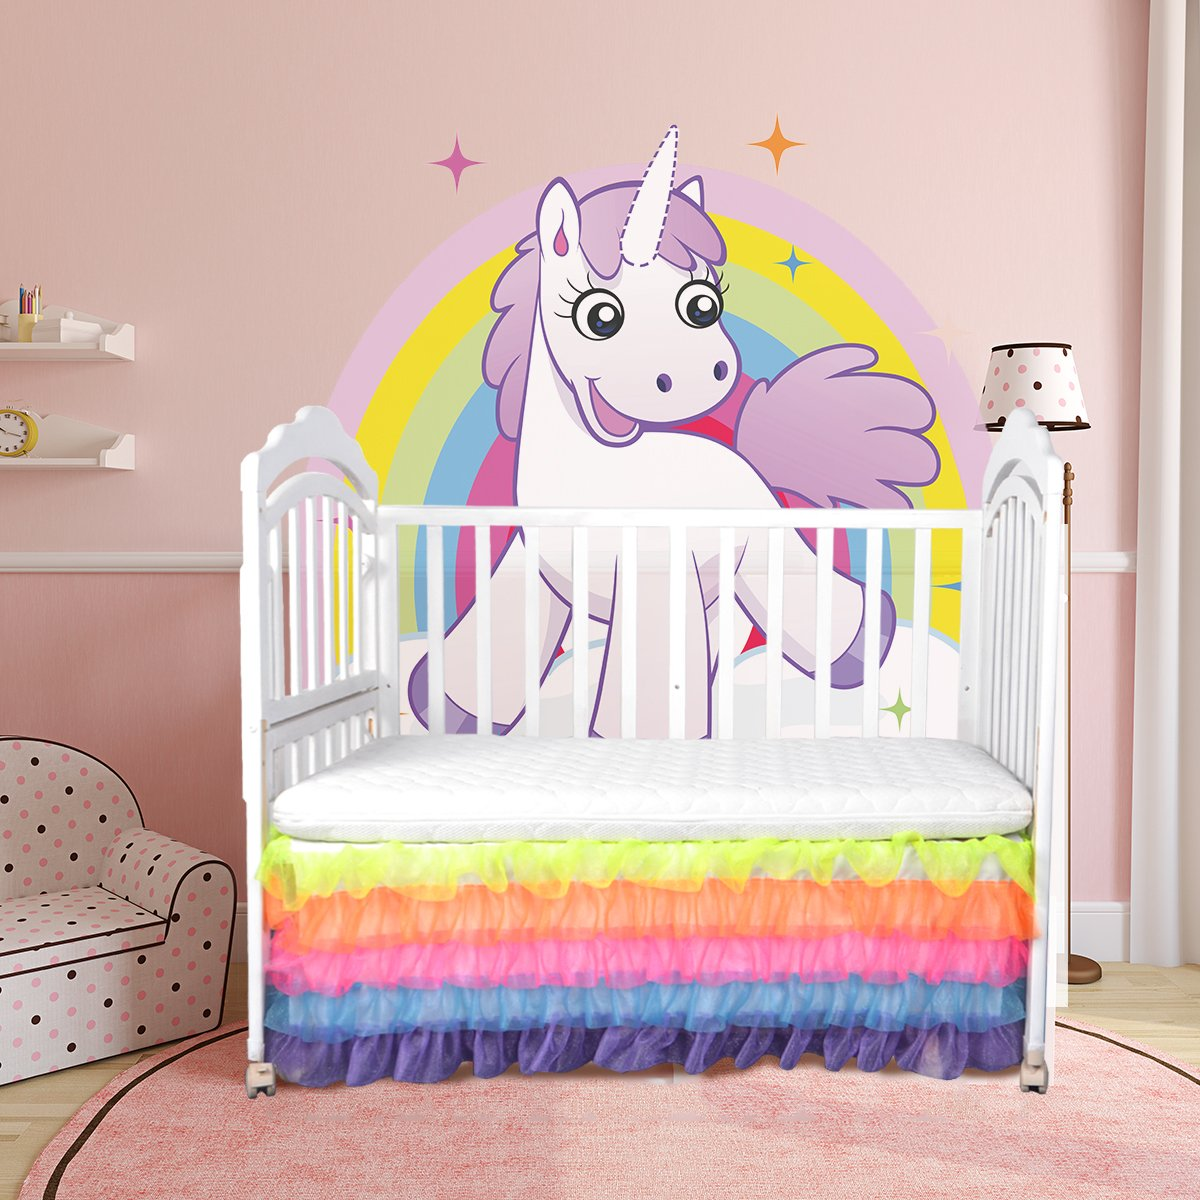 Toddler Bed Skirt Ruffle Crib Skirt for Mini Baby Boys and Girls Rainbow Tutu Bed Skirt 5Layers Drop Tulle for Baby Unicorn Party,Wedding Baby Shower Birthday Party Decorations